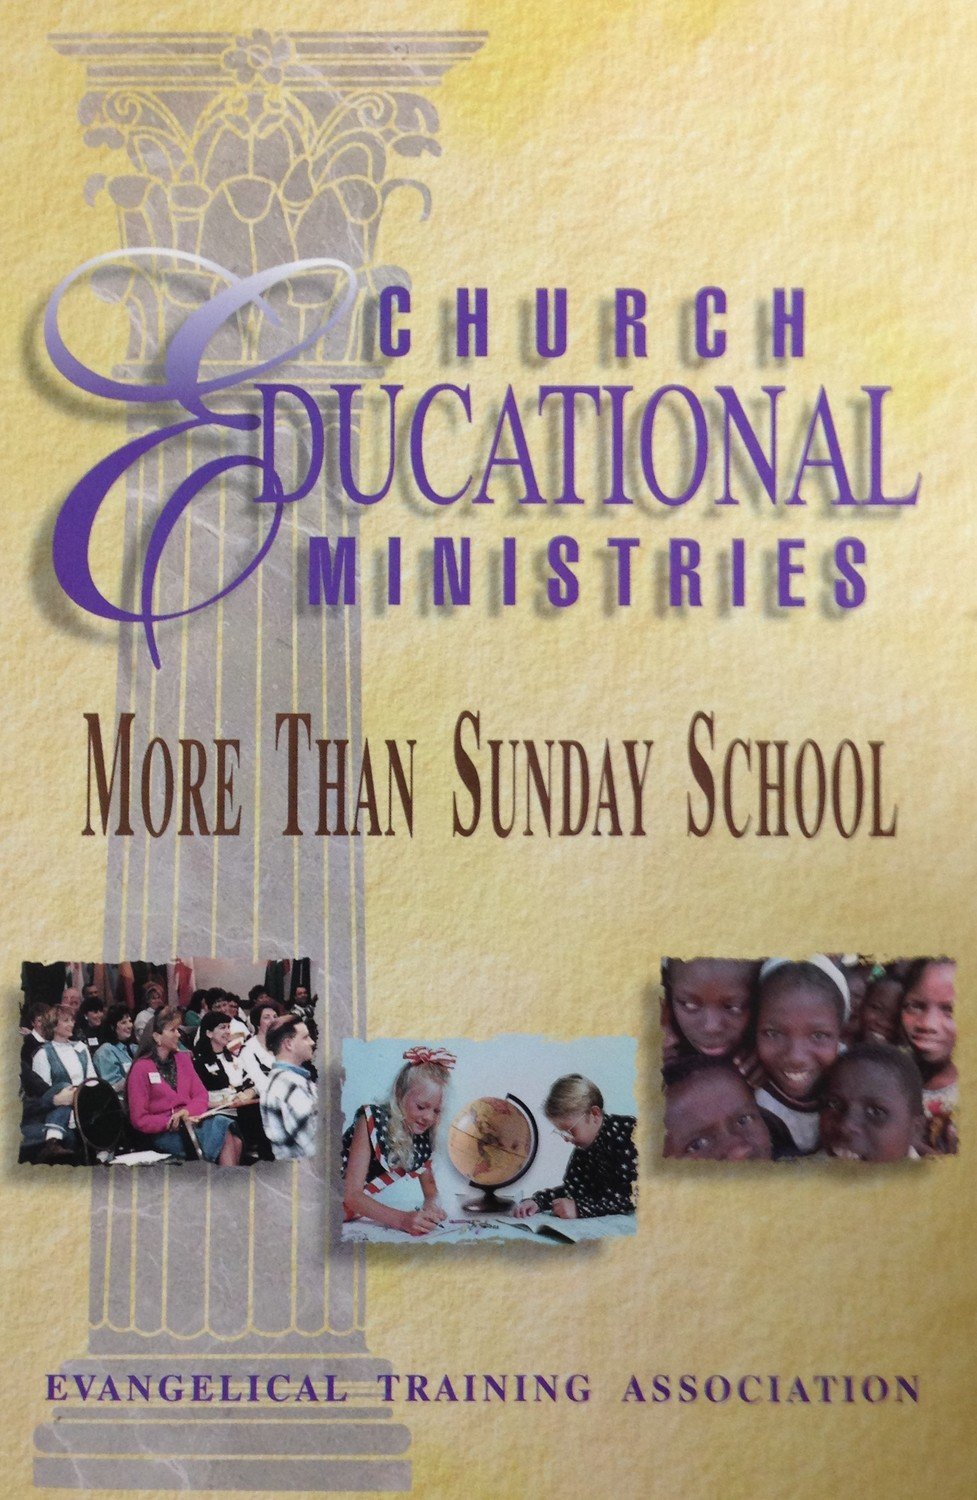 Educational Church Ministries:  More Than Sunday School by Evangelical Training Association